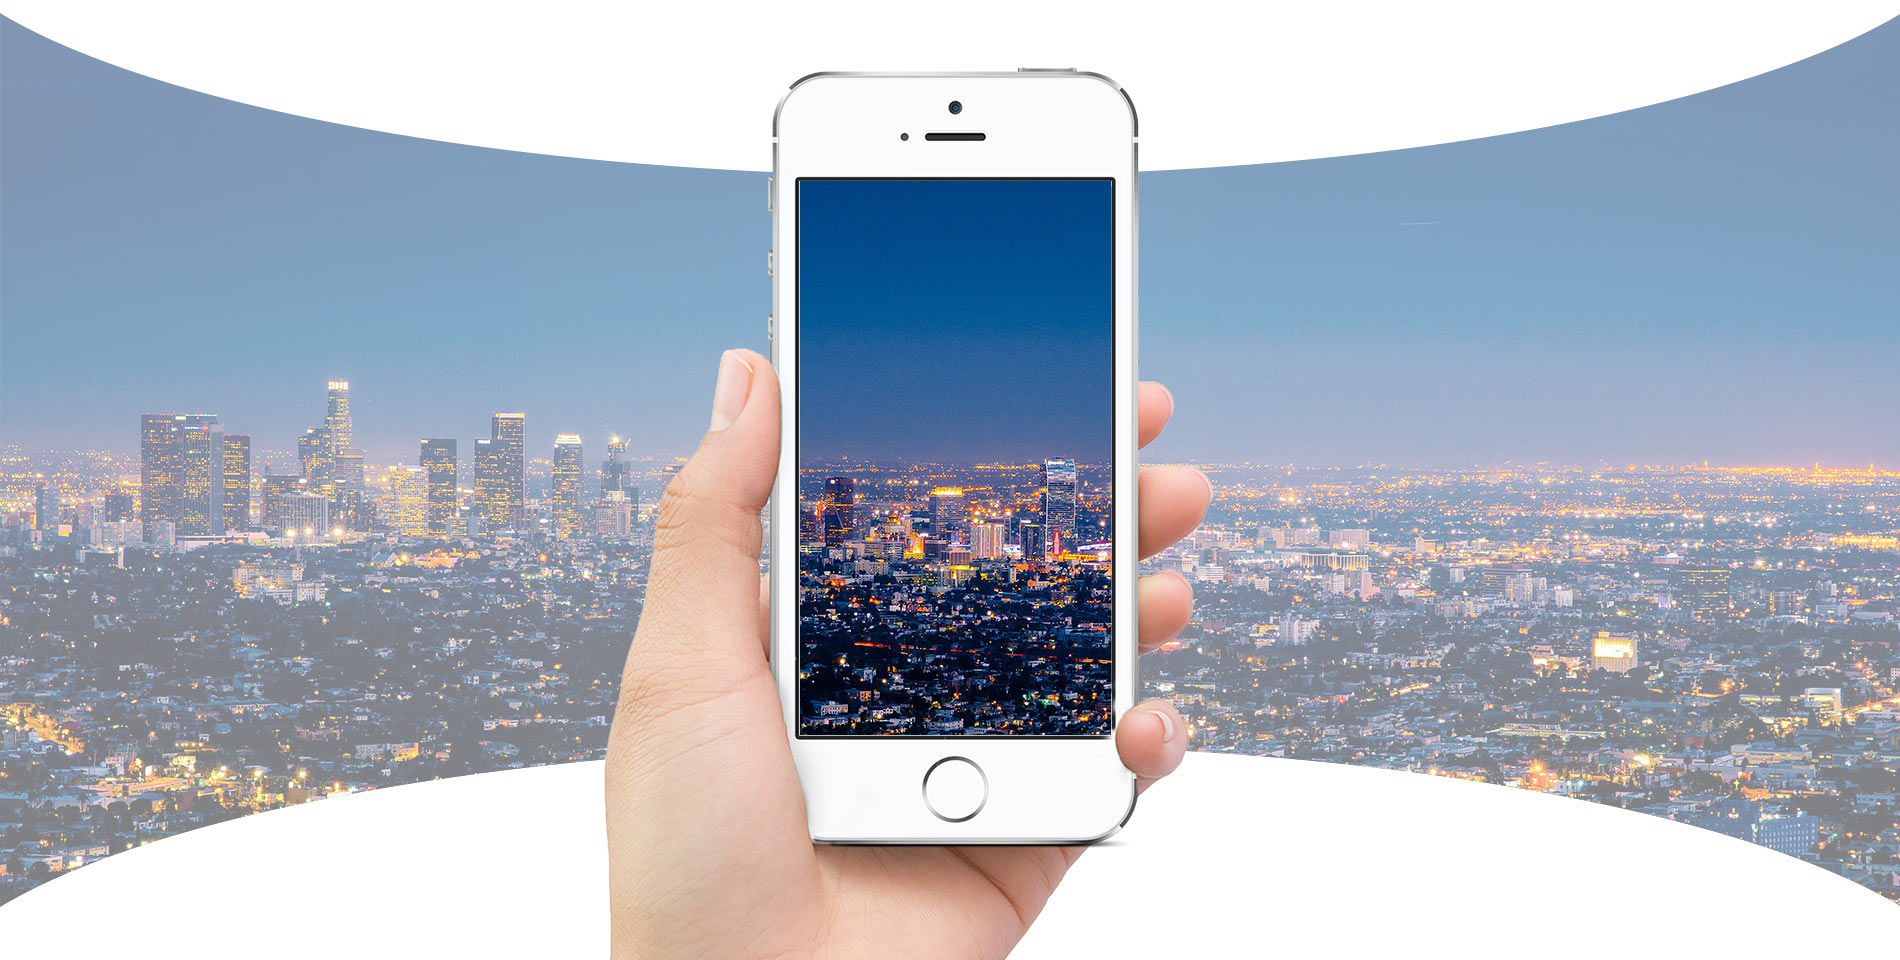 Hand Holding Phone Featuring 360 Virtual Reality Ad Platform City